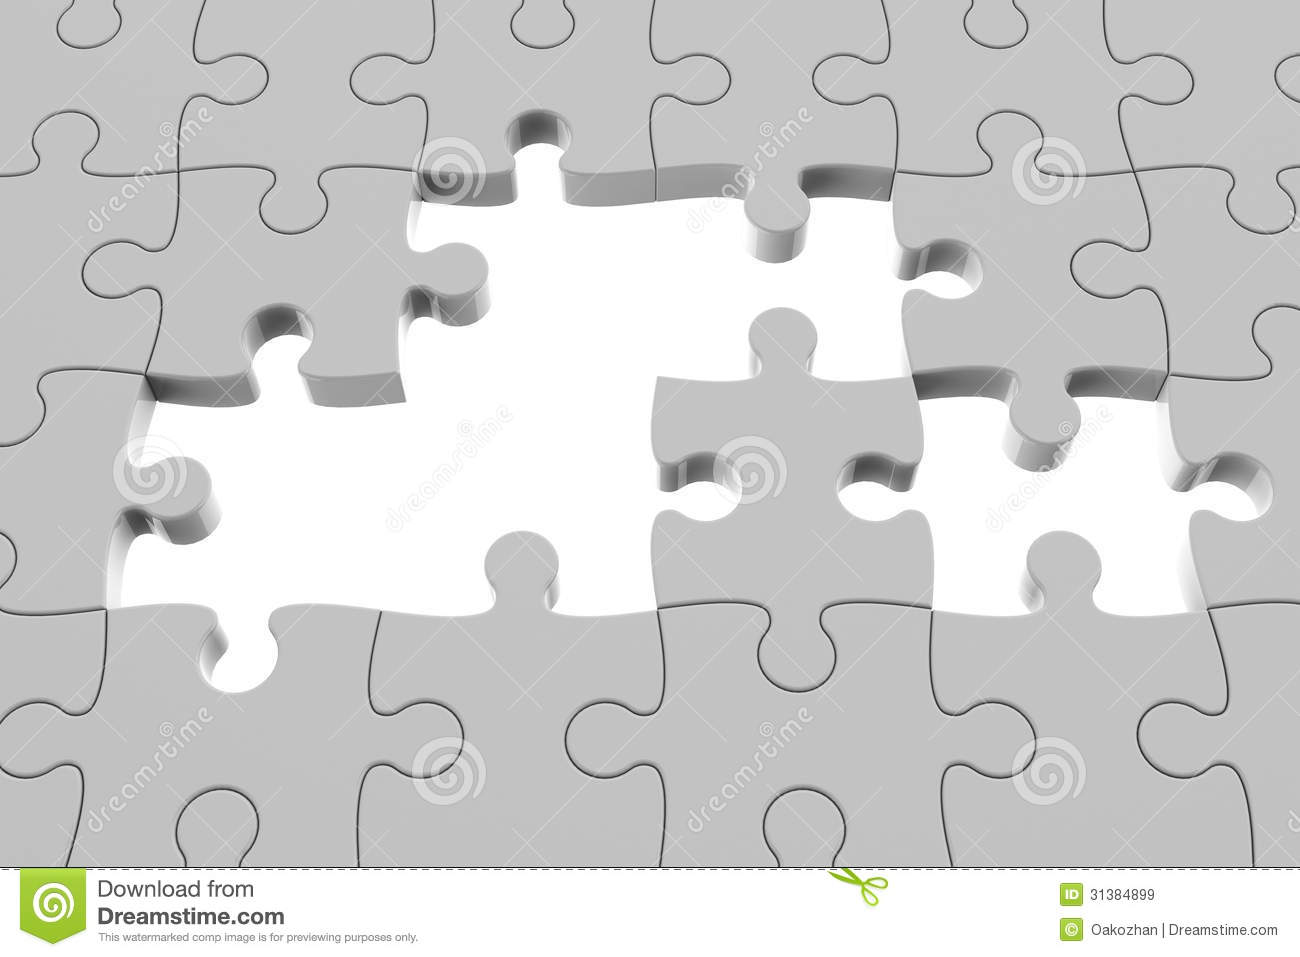 Grey puzzle pieces stock illustration. Illustration of designed ...